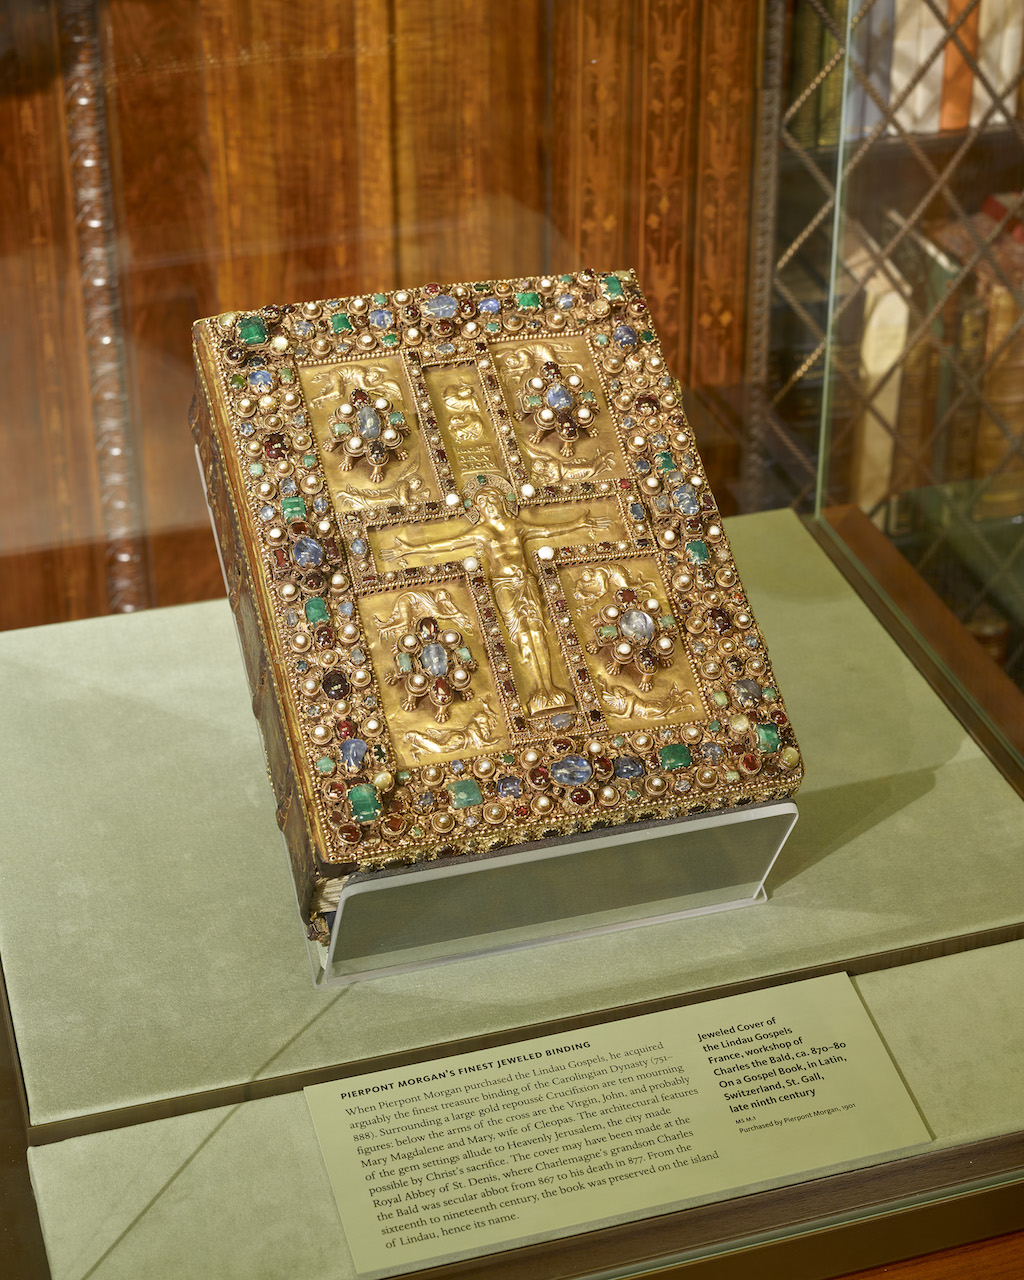 Lindau Gospels. Lindau Gospels, (MS M.1) in case in Mr. Morgan's Library, the East Room, Photography by Graham S. Haber, Februray 2016 (courtesy Morgan Library & Museum)